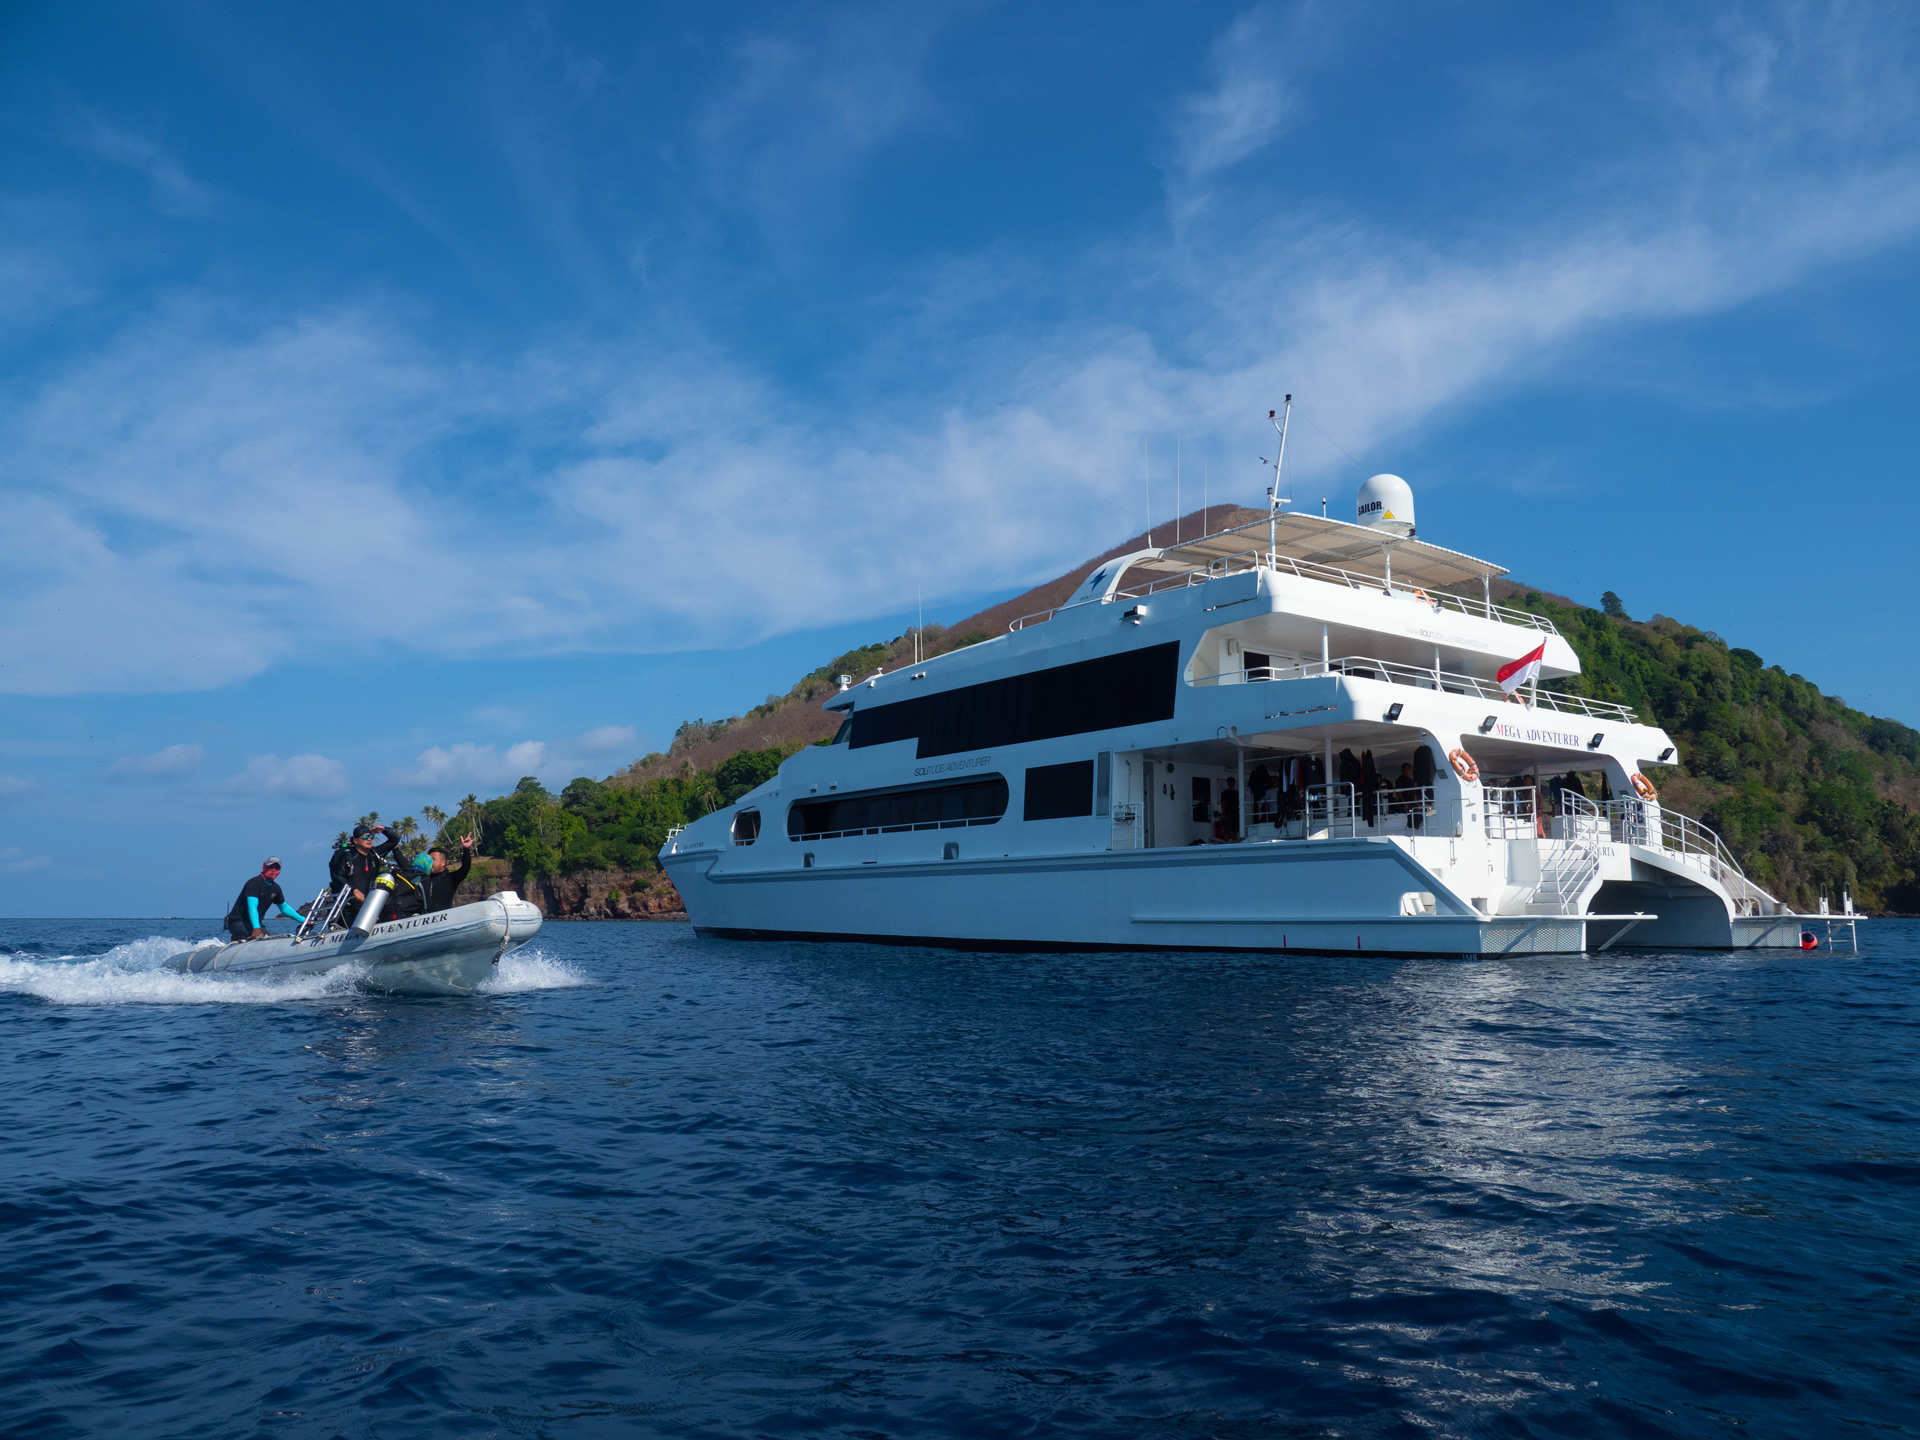 Adventurer Solitude - Raja Ampat - Drone - Scuba Diving - liveaboard - catamaran - holiday - vacation - luxury - dive - indonesia - palau - philippines